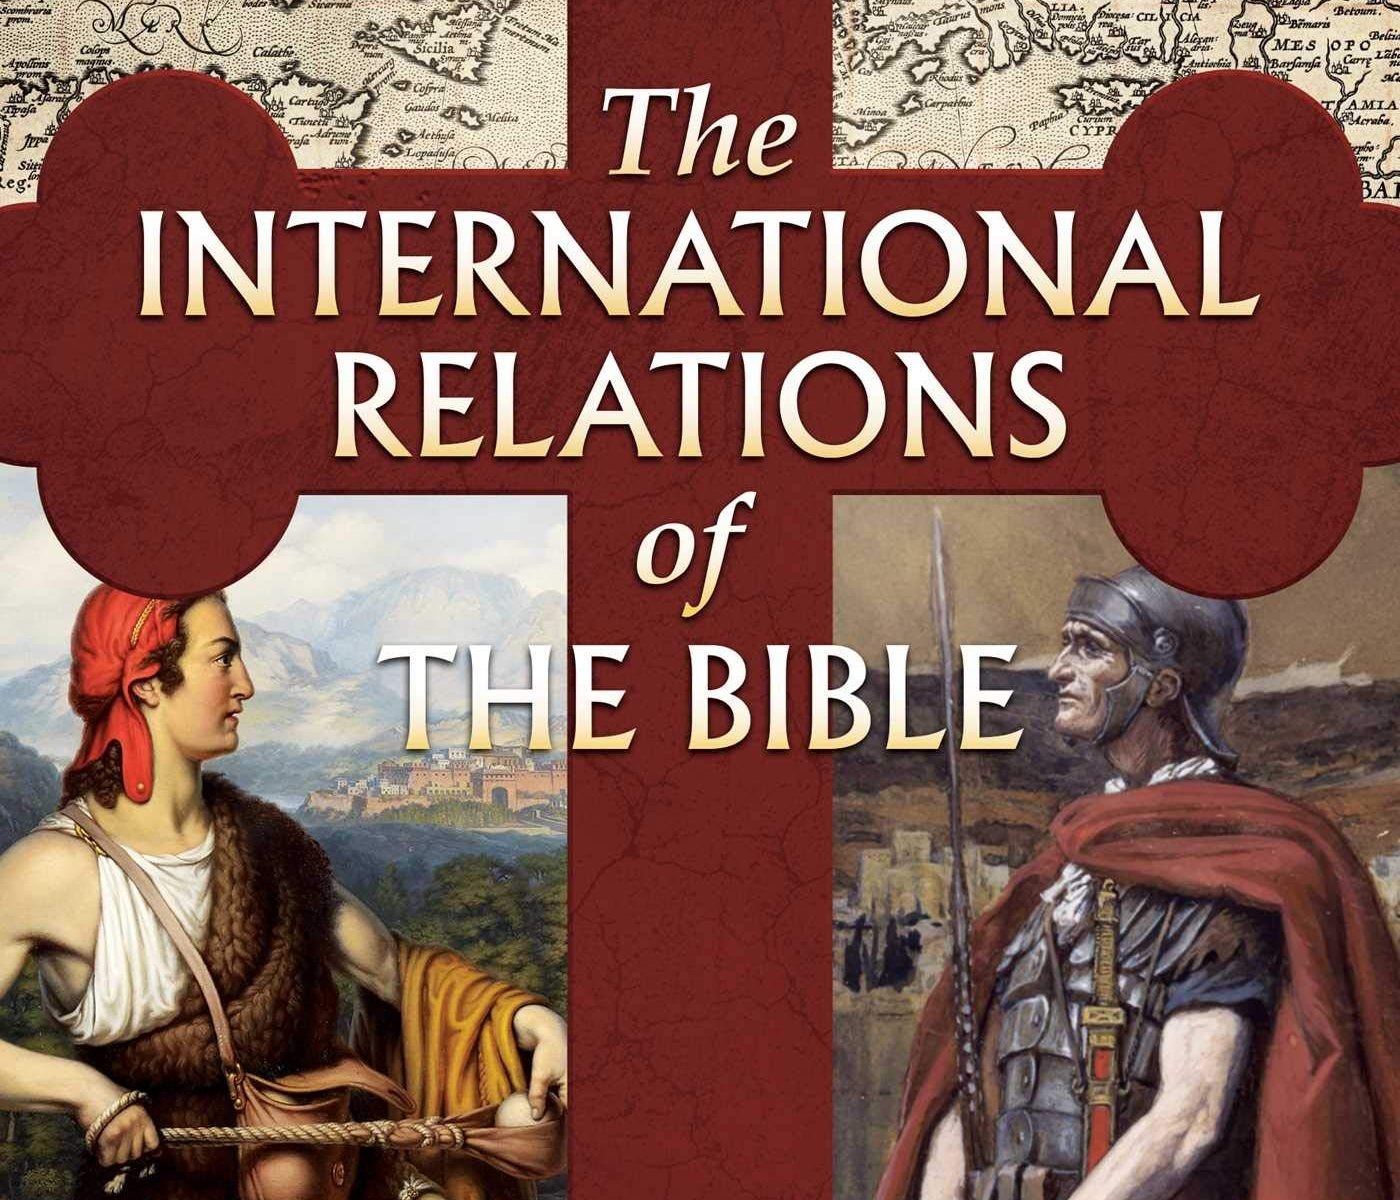 The cover of Dr. Lamont Colucci's third book, The International Relations of the Bible